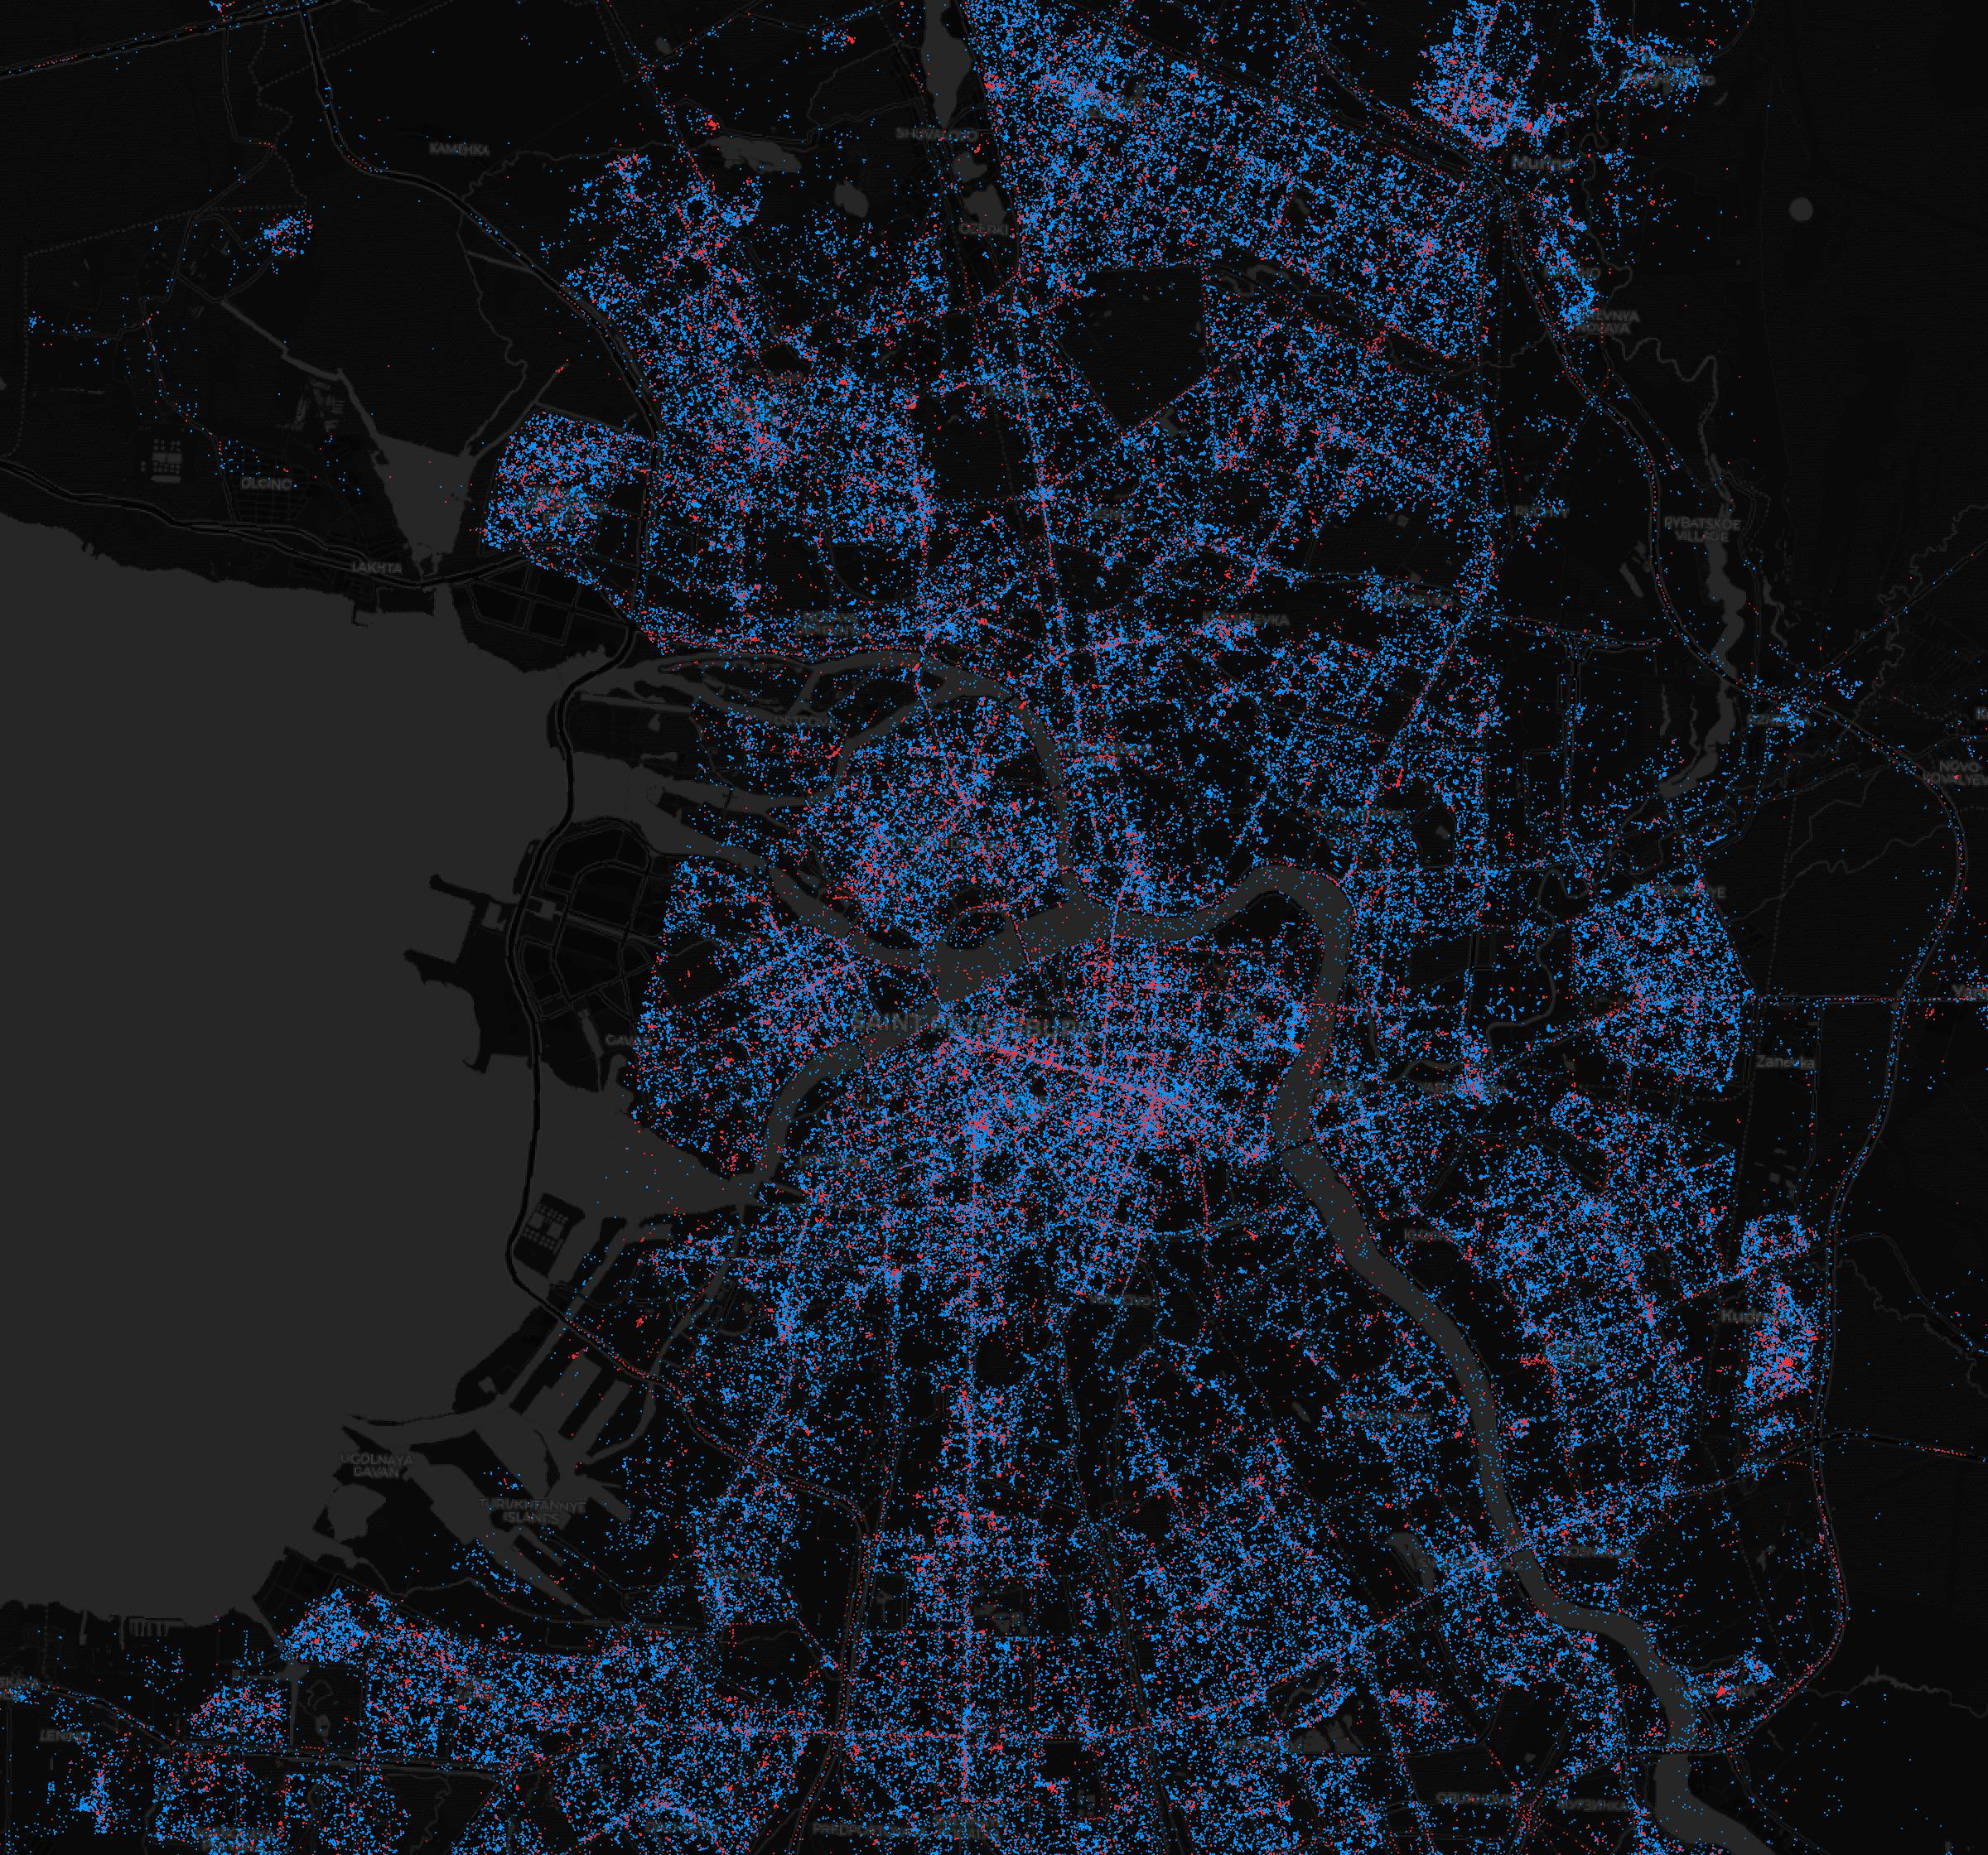 In Moscow - iPhones, in St. Petersburg - Android. What are the maps of Android and iOS users in Russia | Kanobu - Image 2